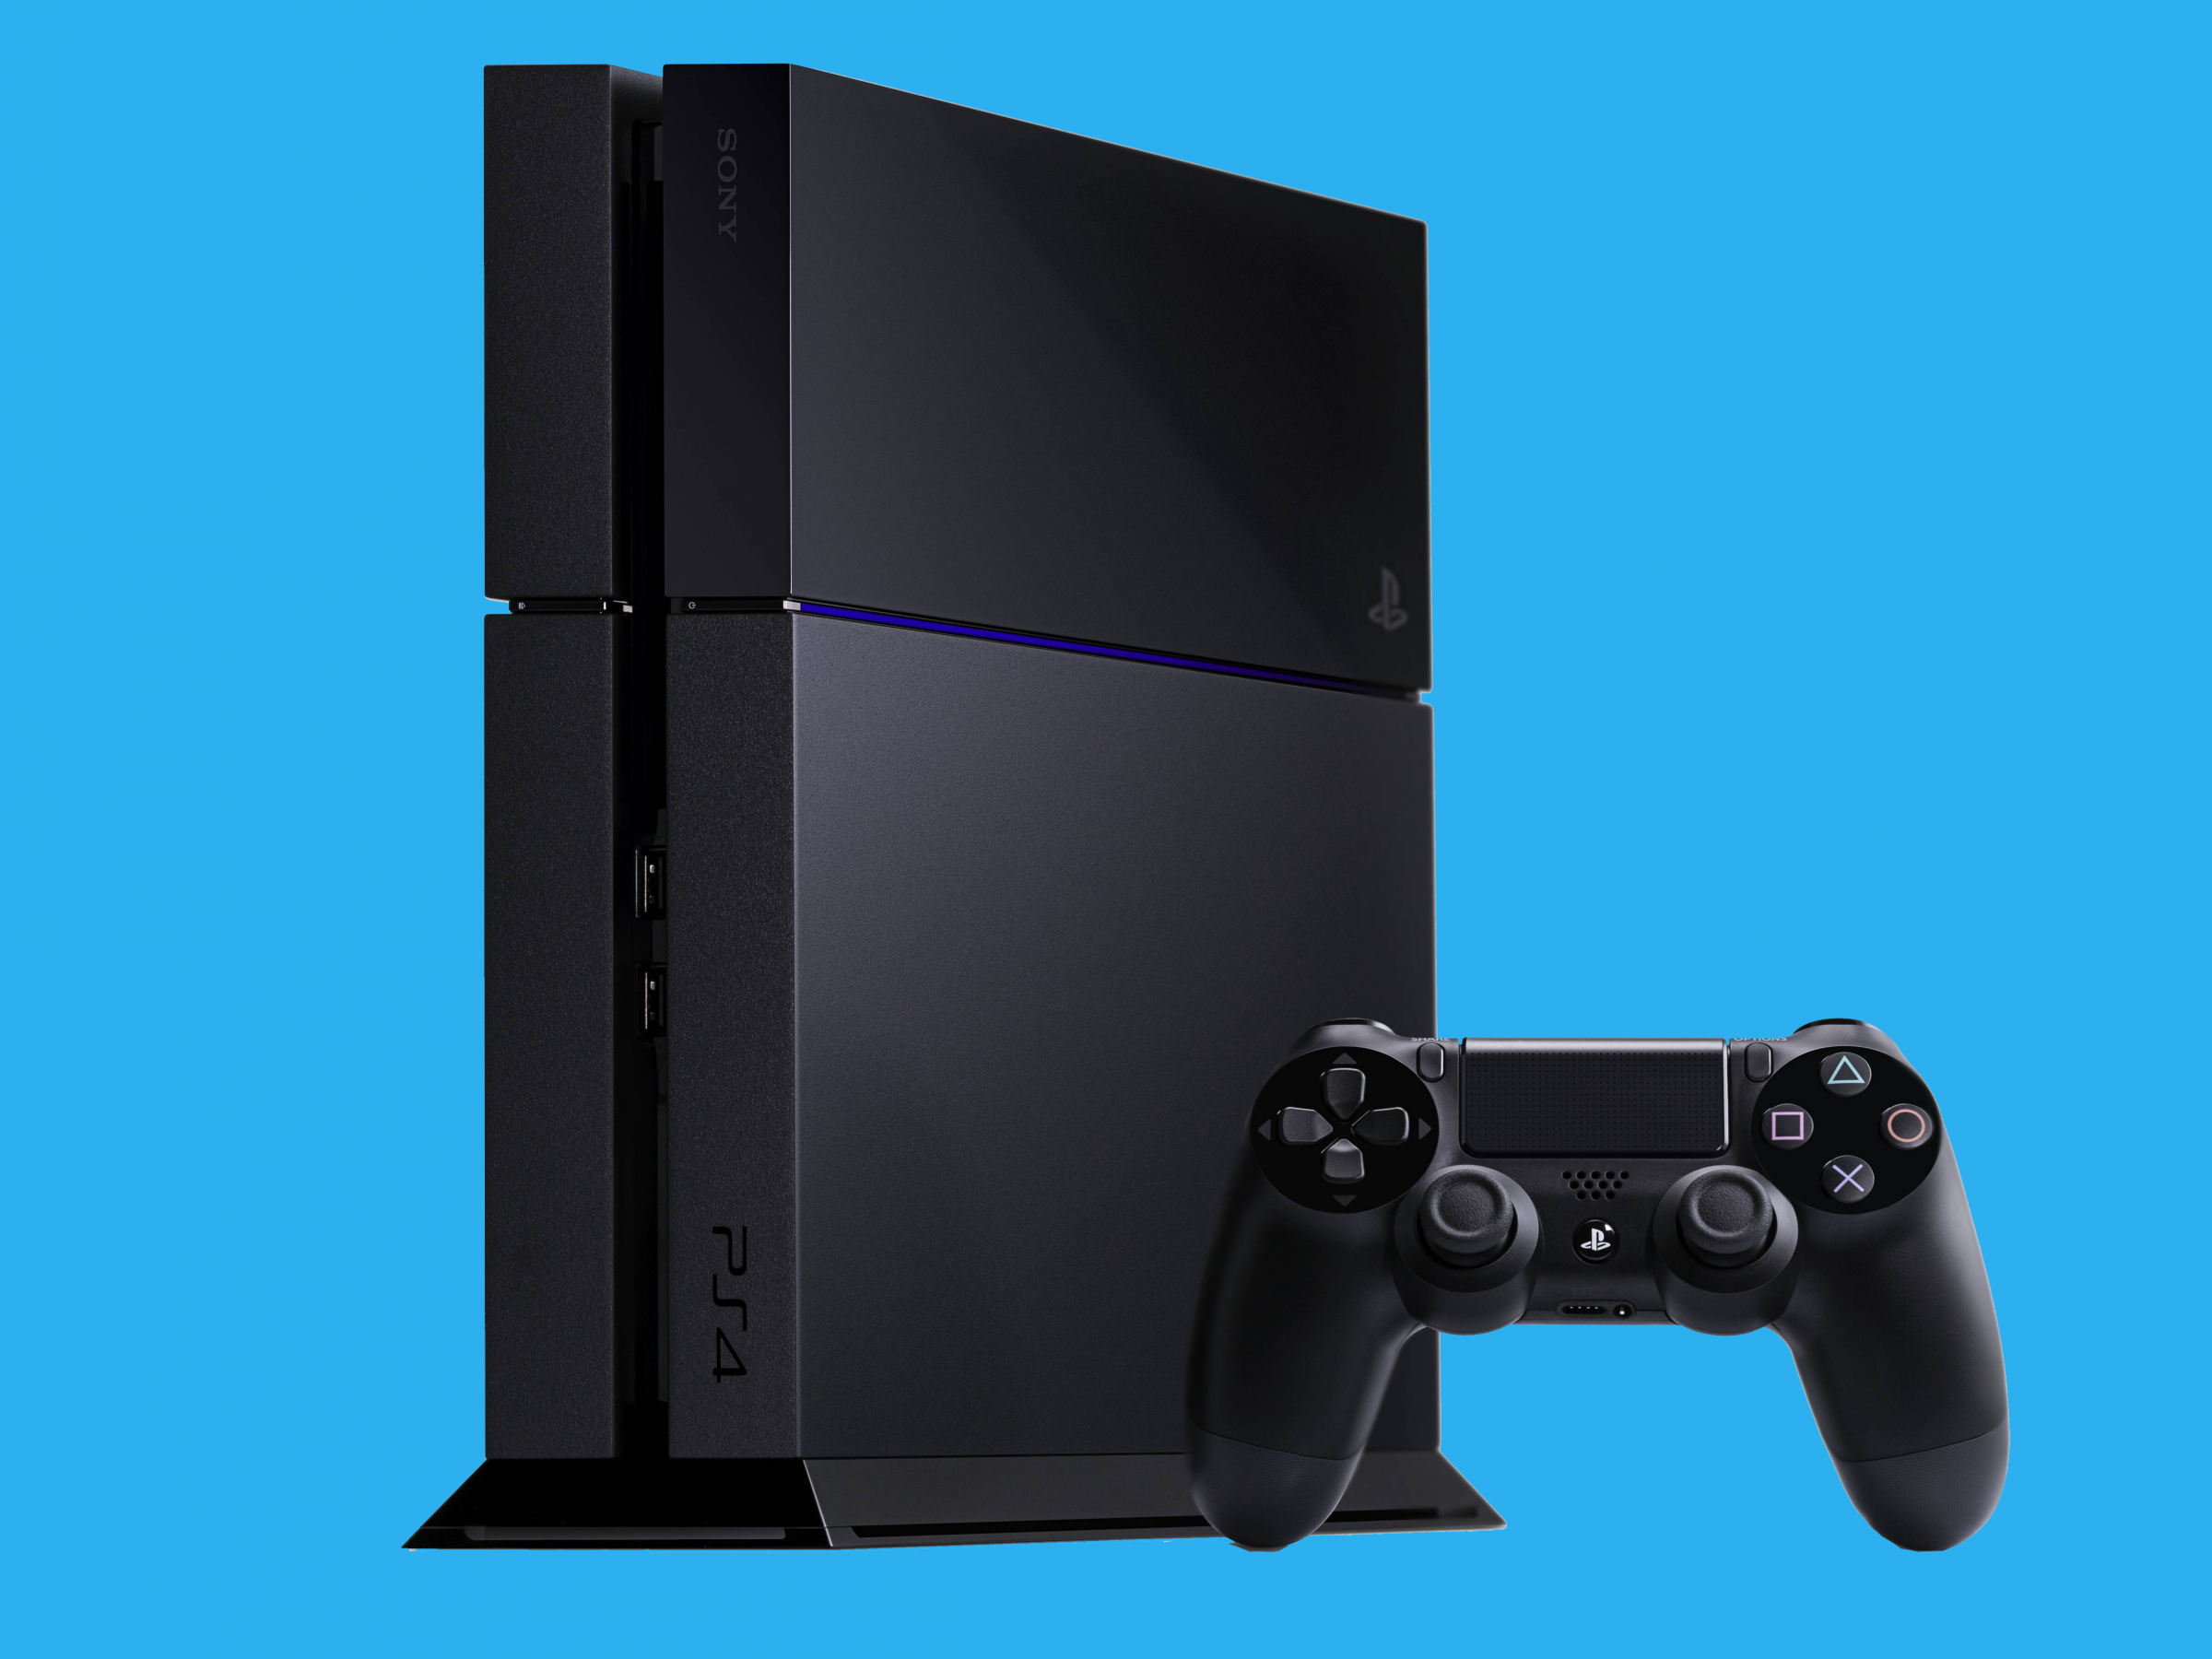 Sony Playstation-Event Holds: Is a New PS4 on the Way?